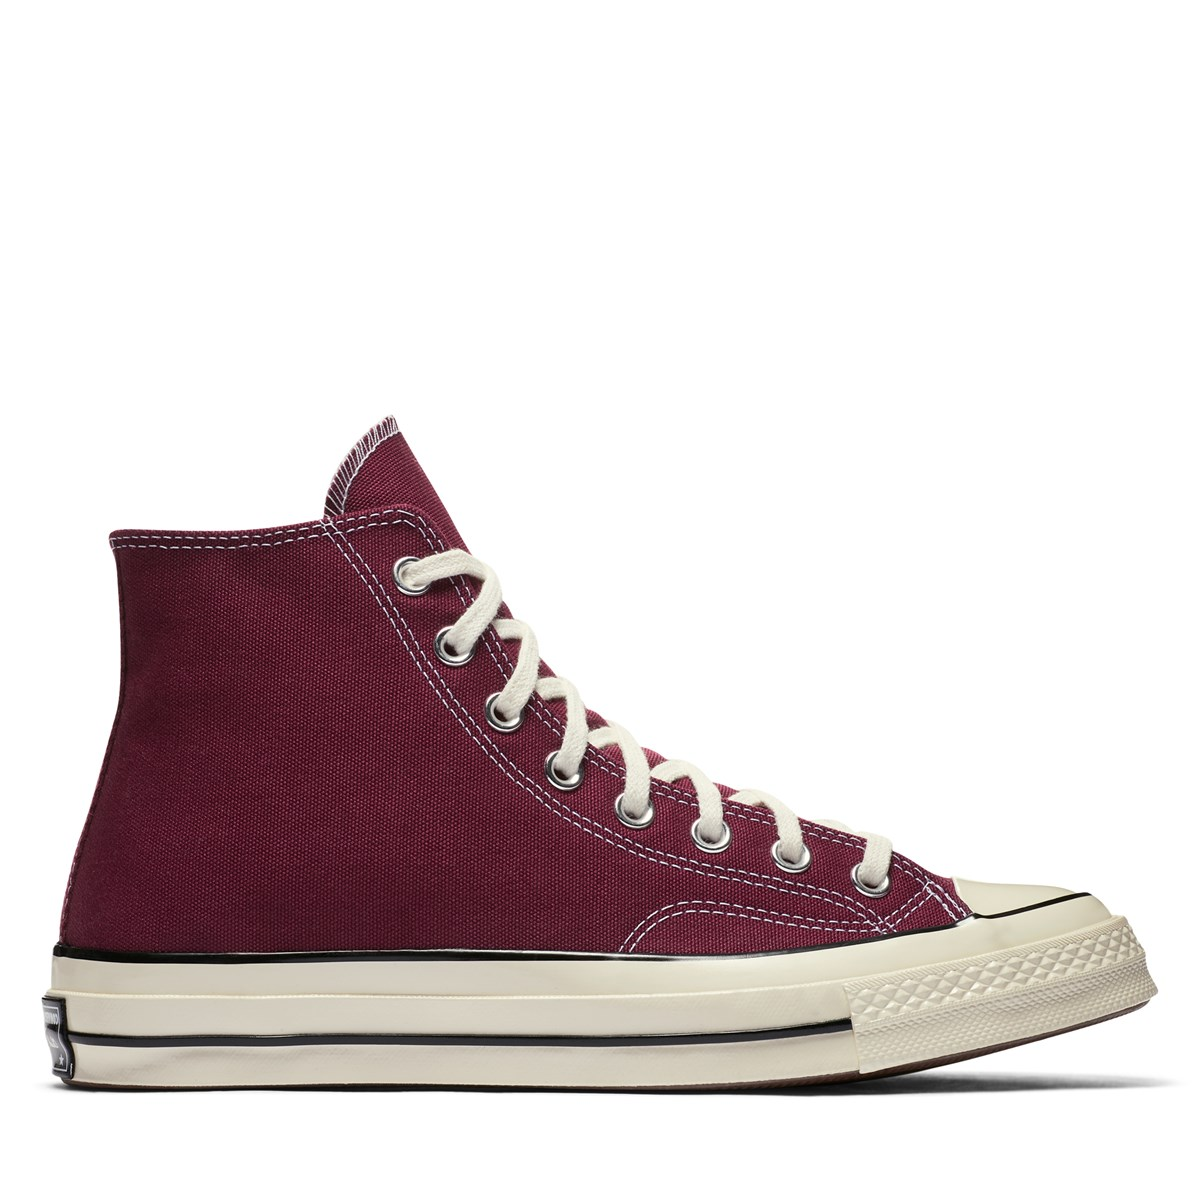 Chuck 70 Vintage Hi Sneakers in Dark Burgundy